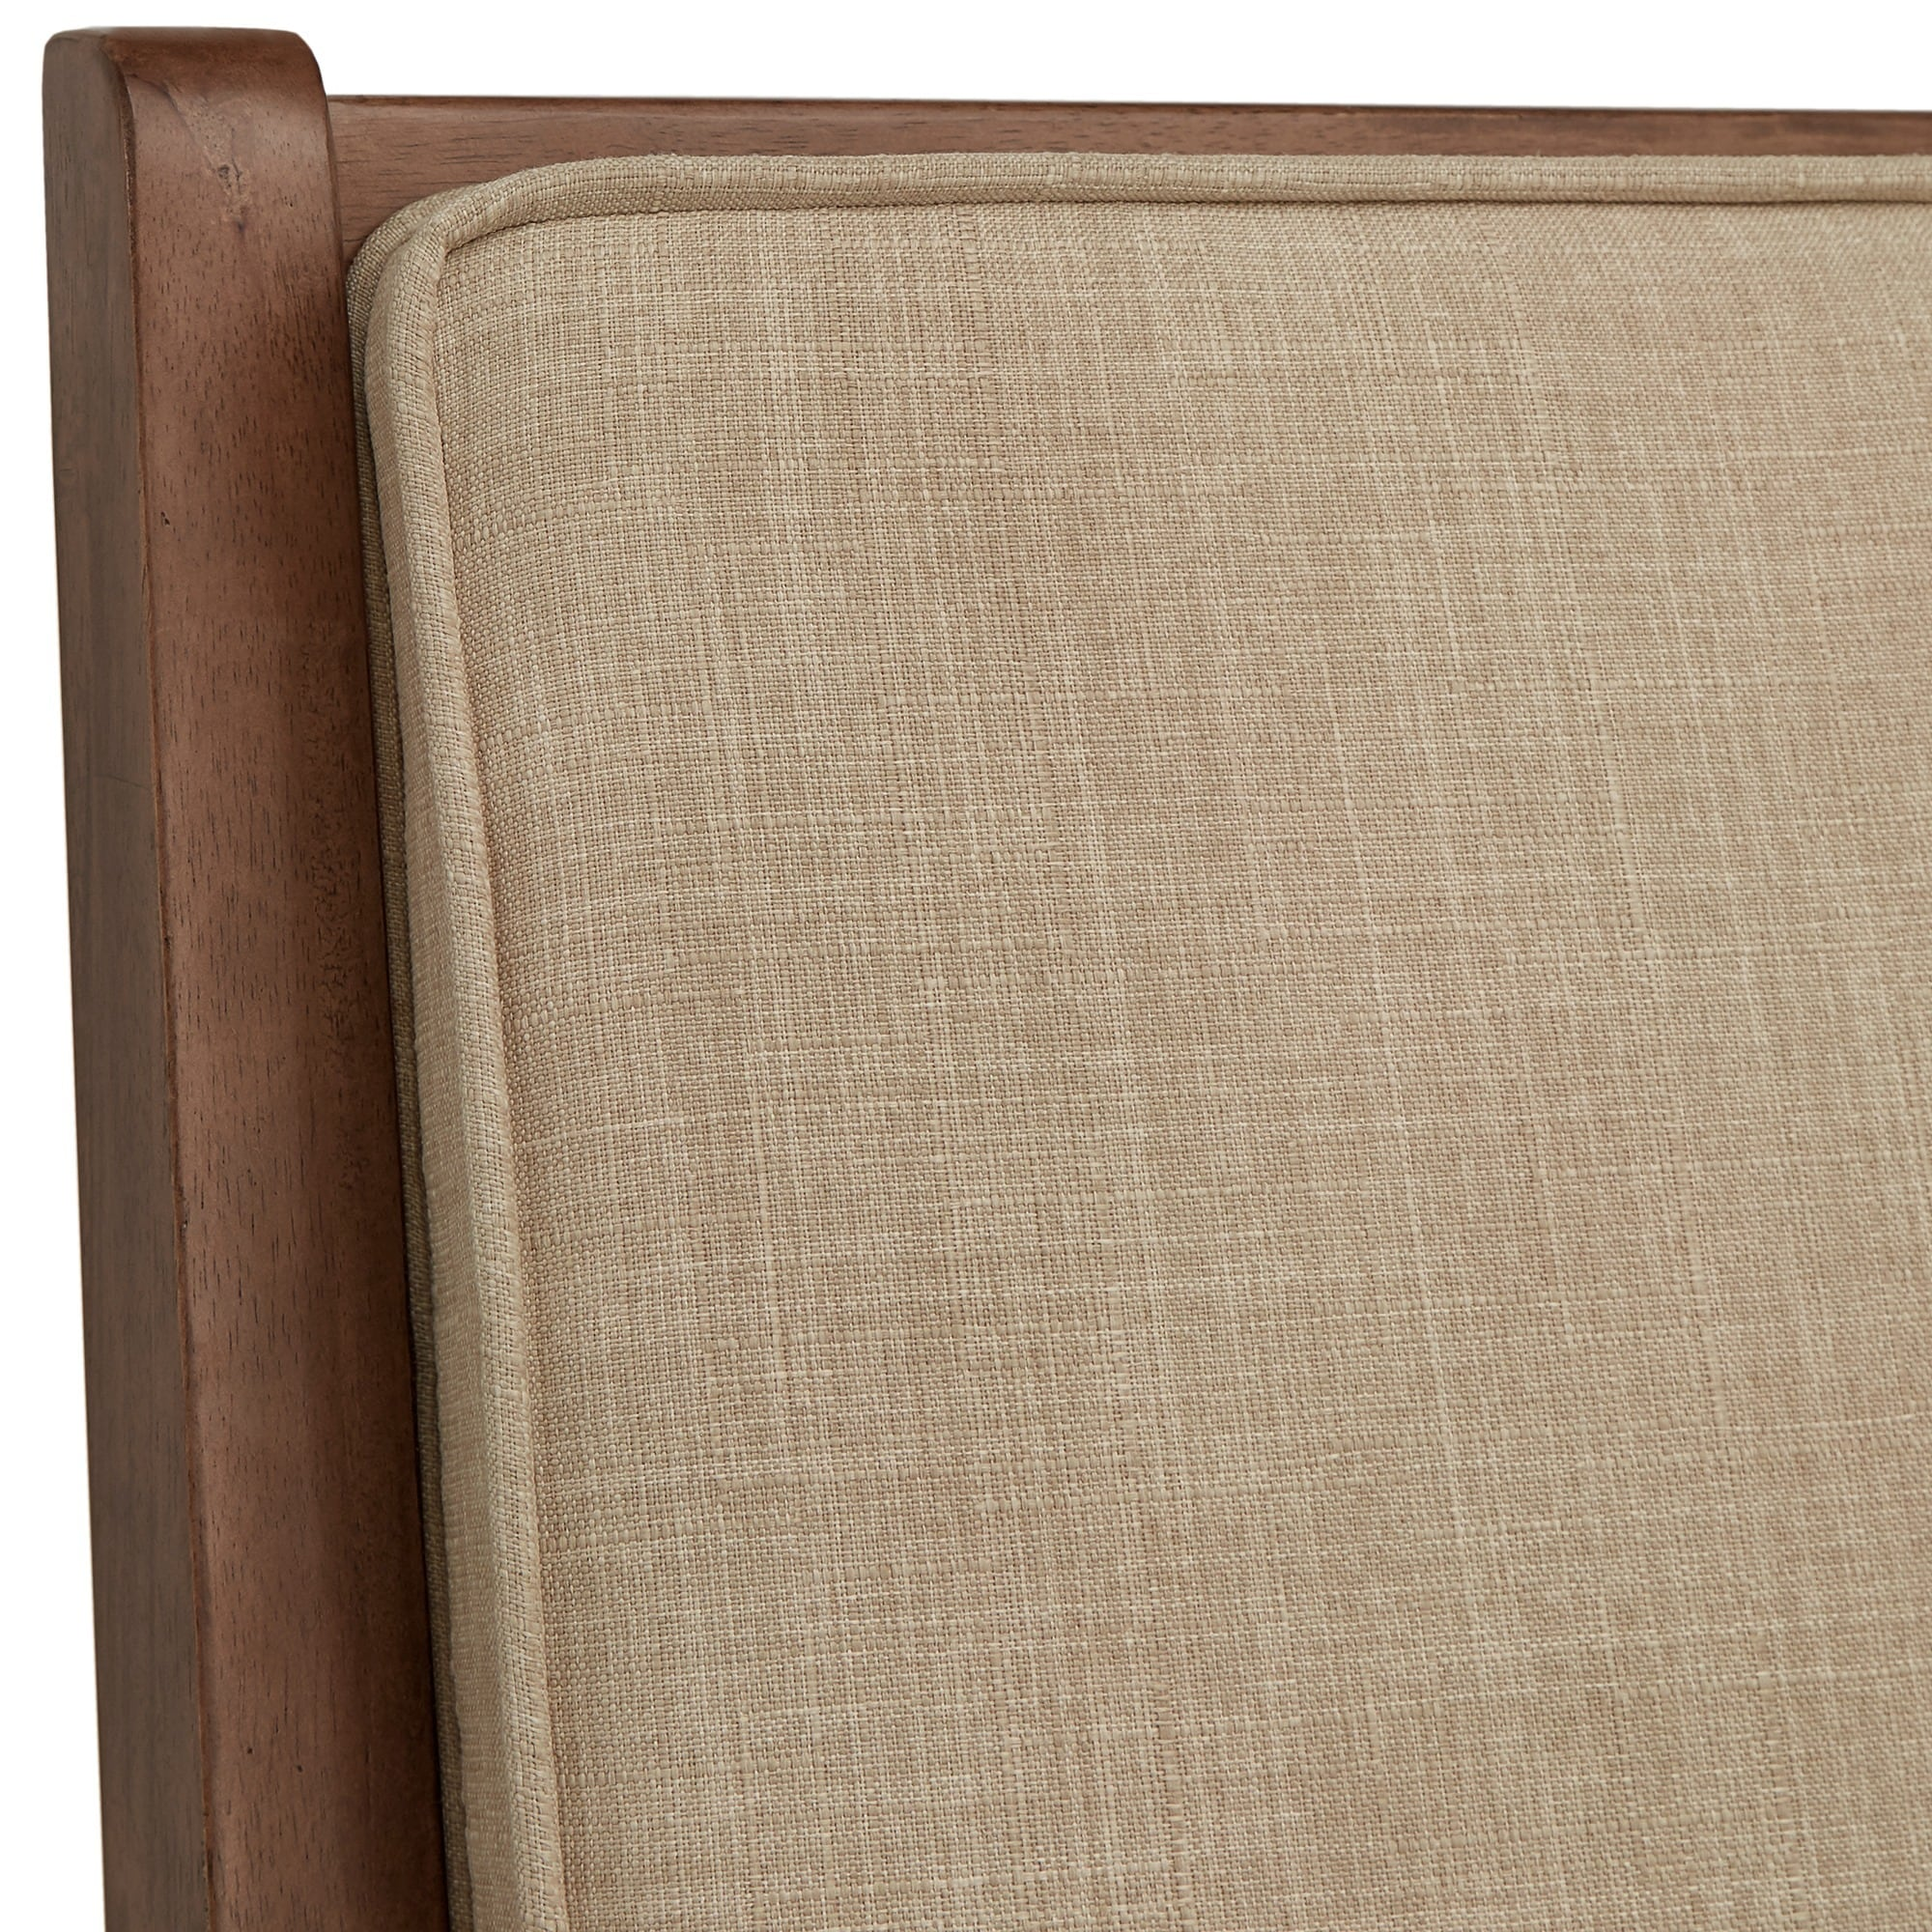 Sylvia Queen Size Mid-Century Dual Panel Linen and Wood Bed by iNSPIRE Q  Modern - Free Shipping Today - Overstock.com - 23980353